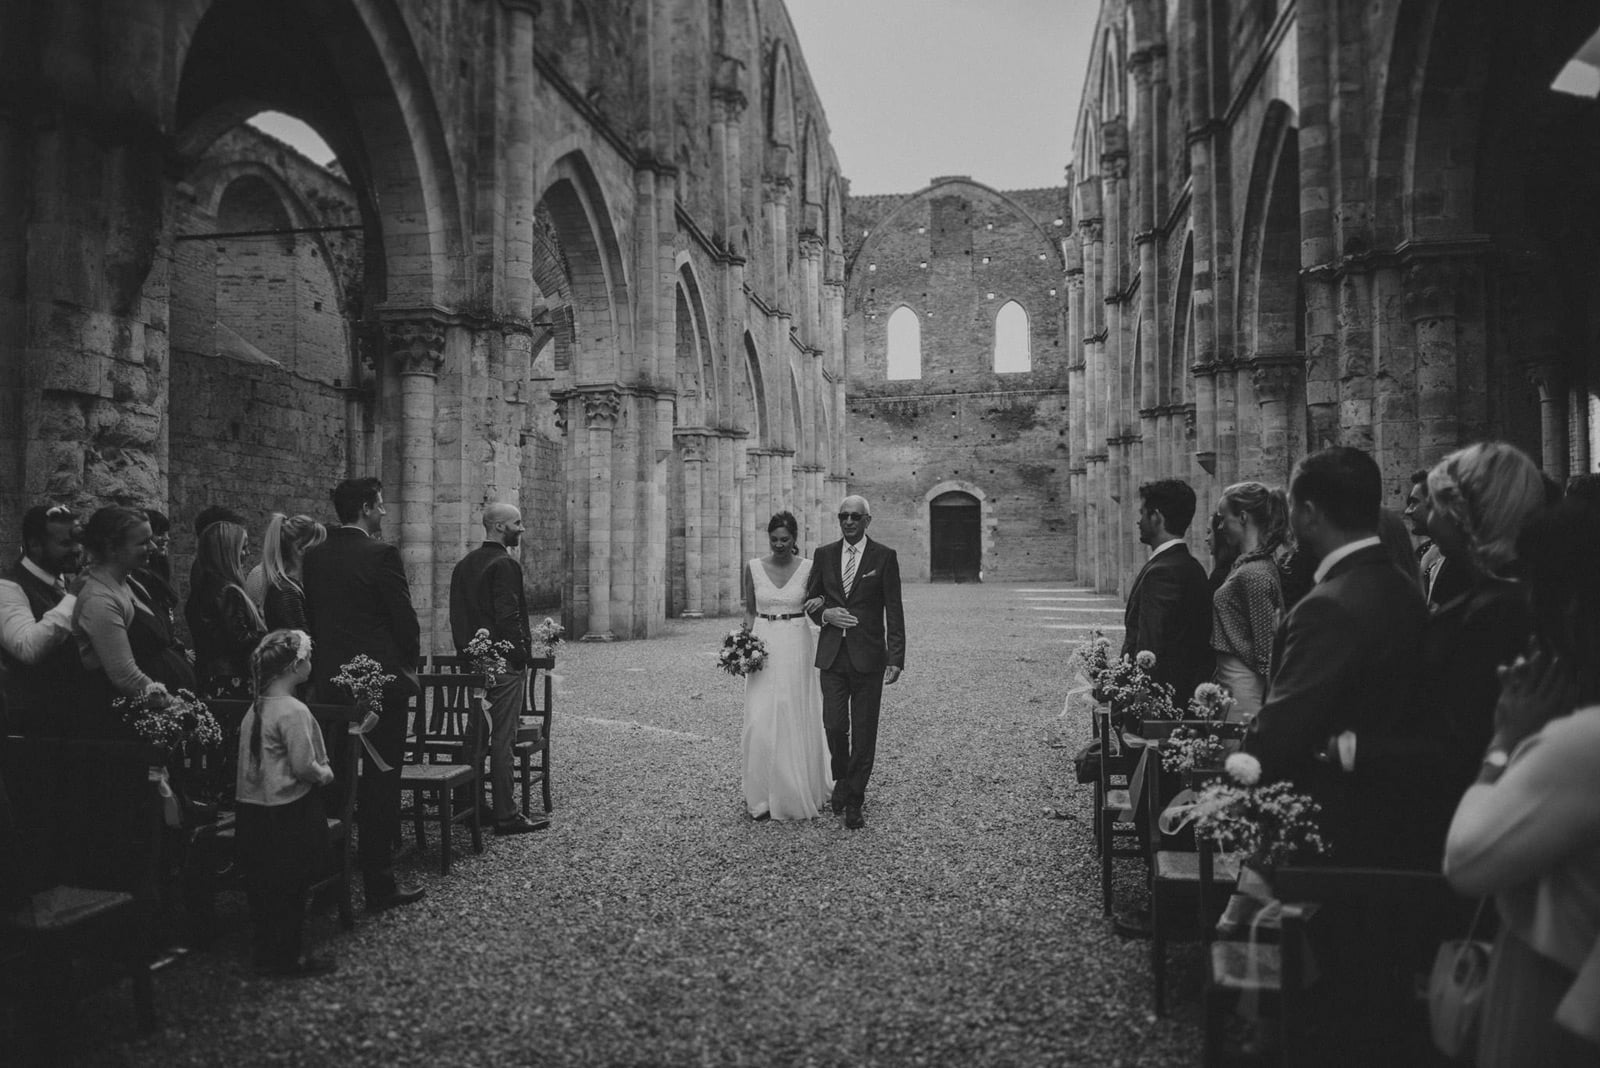 029-wedding-tuscany-san-galgano-siena-photographer